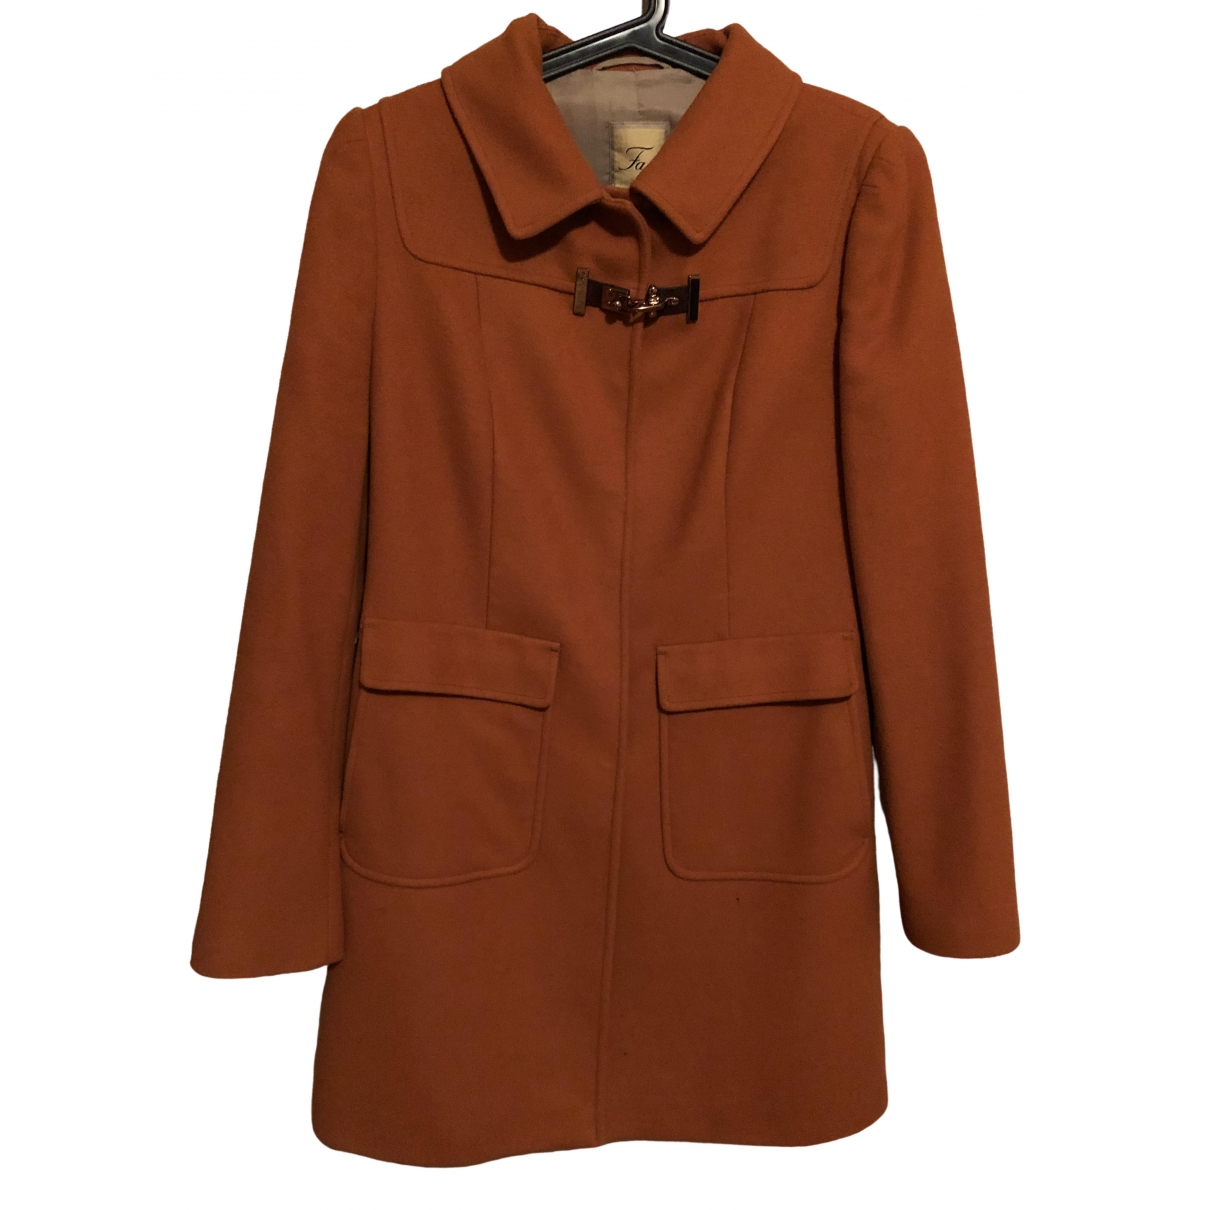 Fay \N Orange Wool coat for Women L International